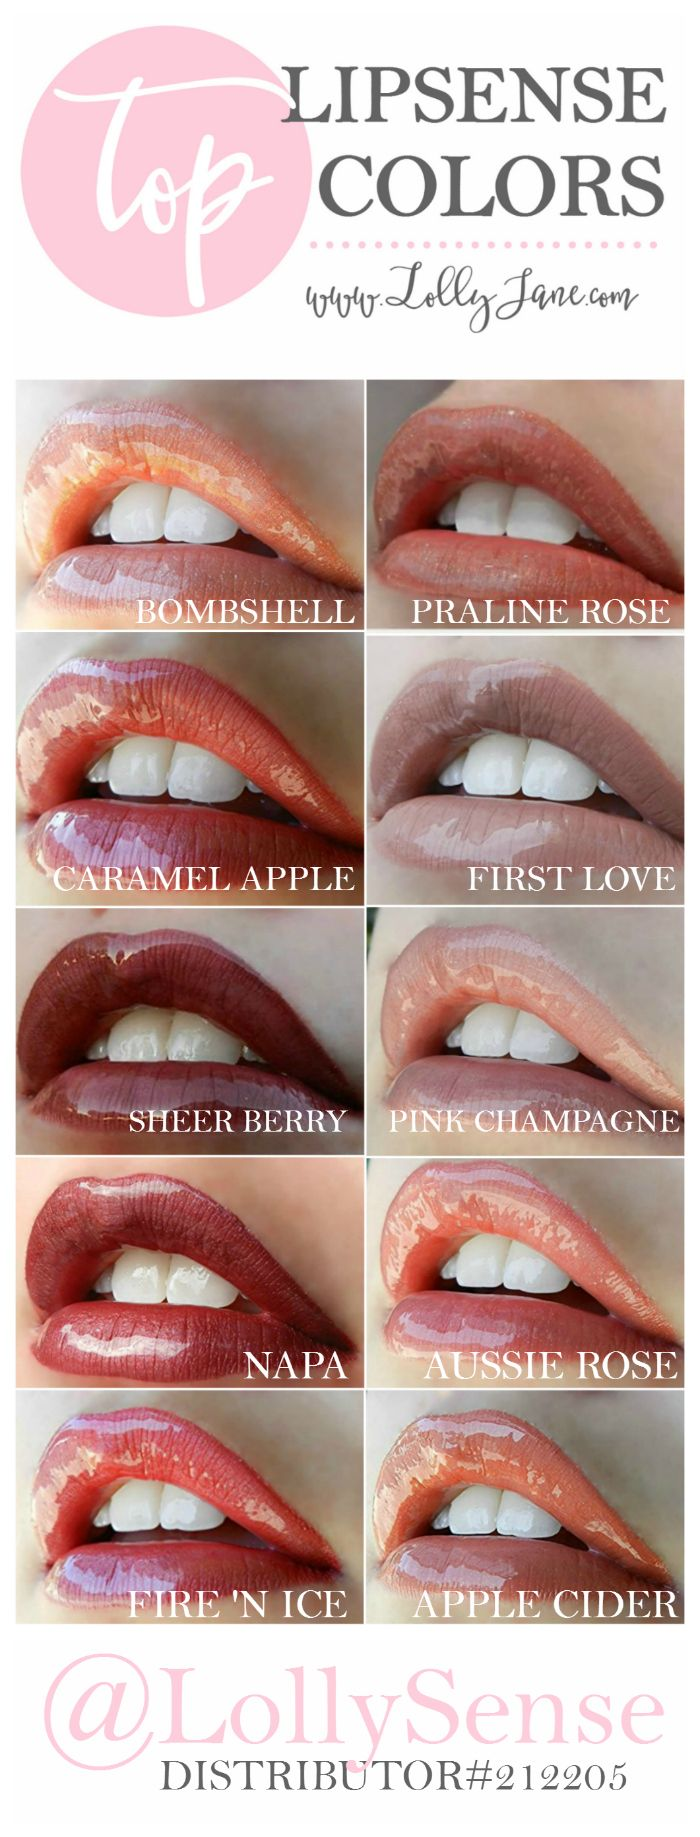 Check out the top LipSense colors, most popular lipstick colors! We love LipSense! The best lipstick out there, waterproof, smudgeproof, kissproof, won't budge or transfer! | Distributor #212205